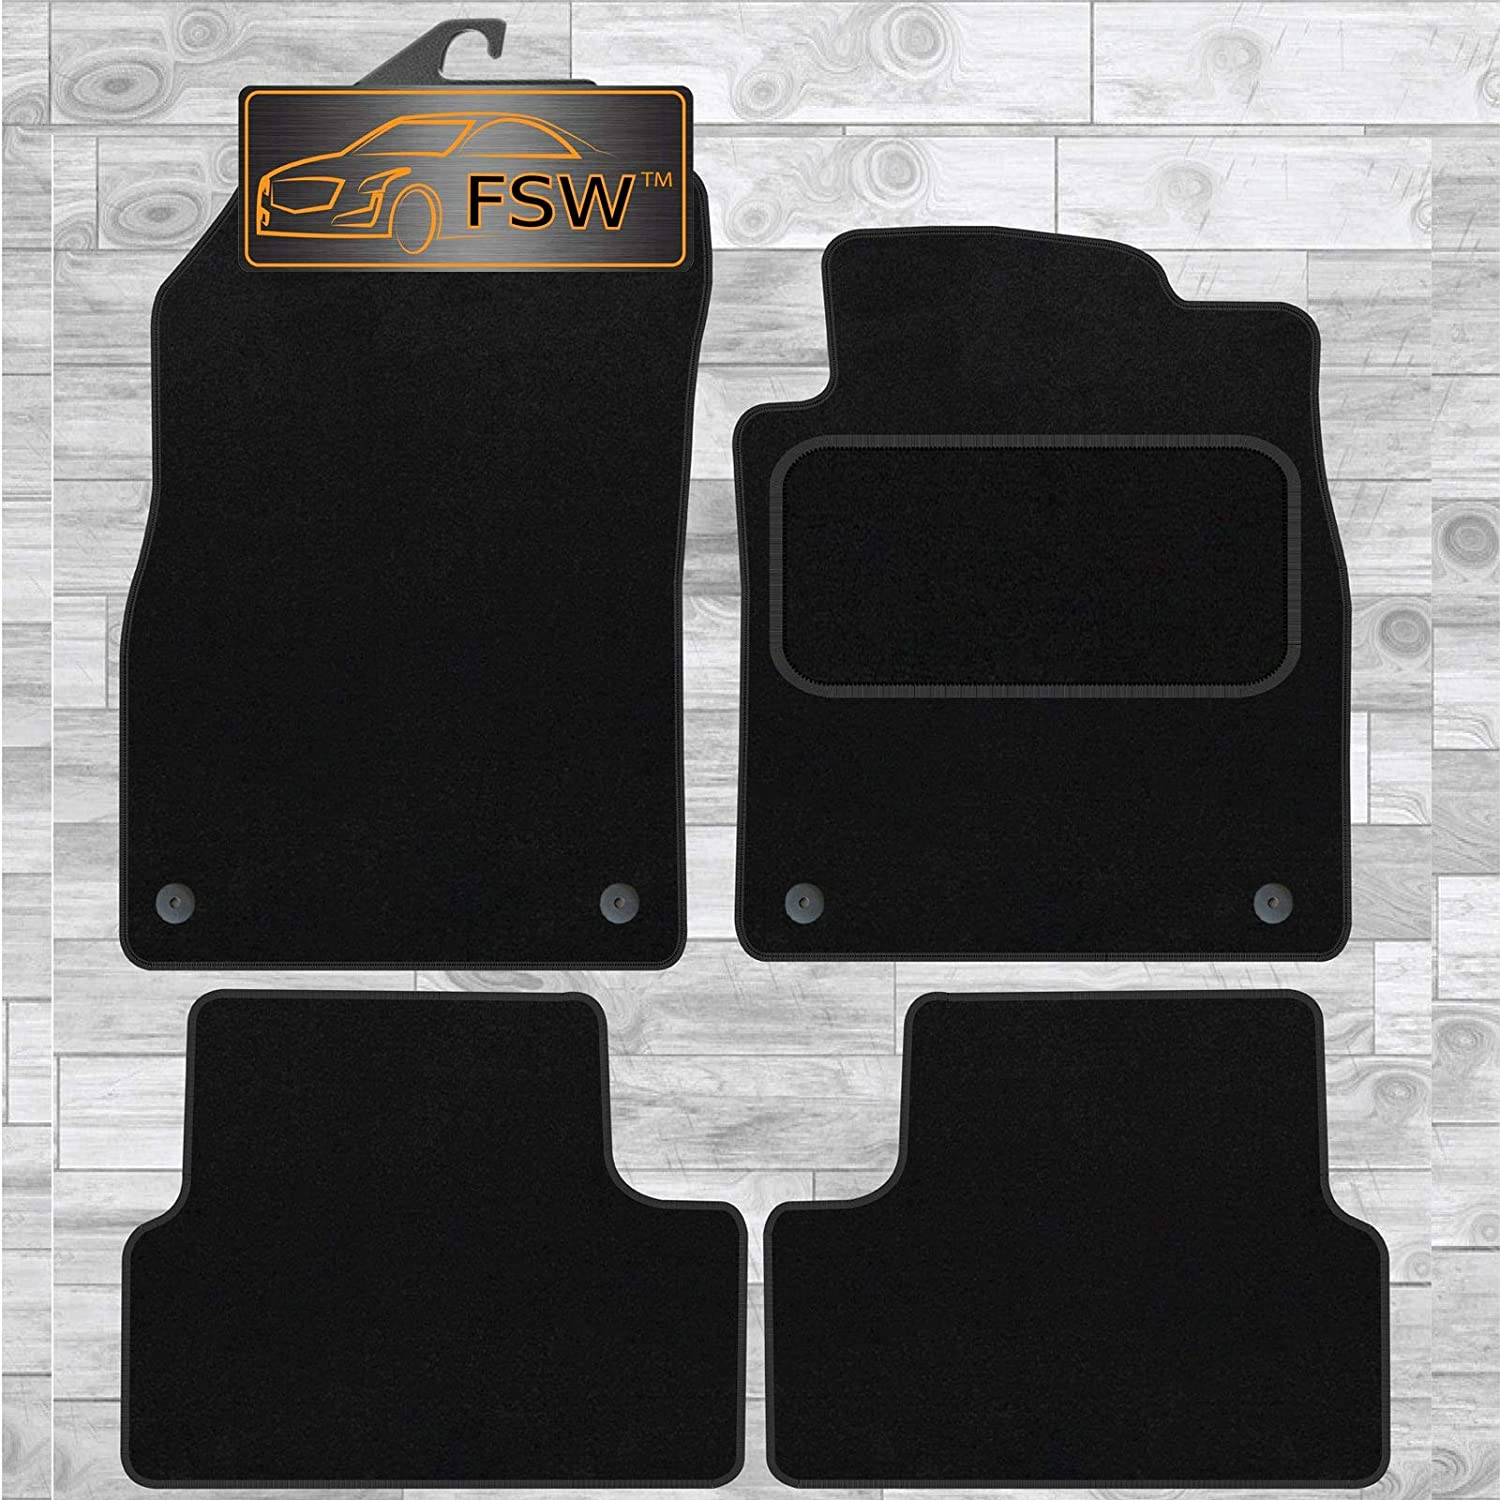 FSW Astra 2010-2015 325Mm Clips Space Tailored Classic Carpet Car Floor Mats Black